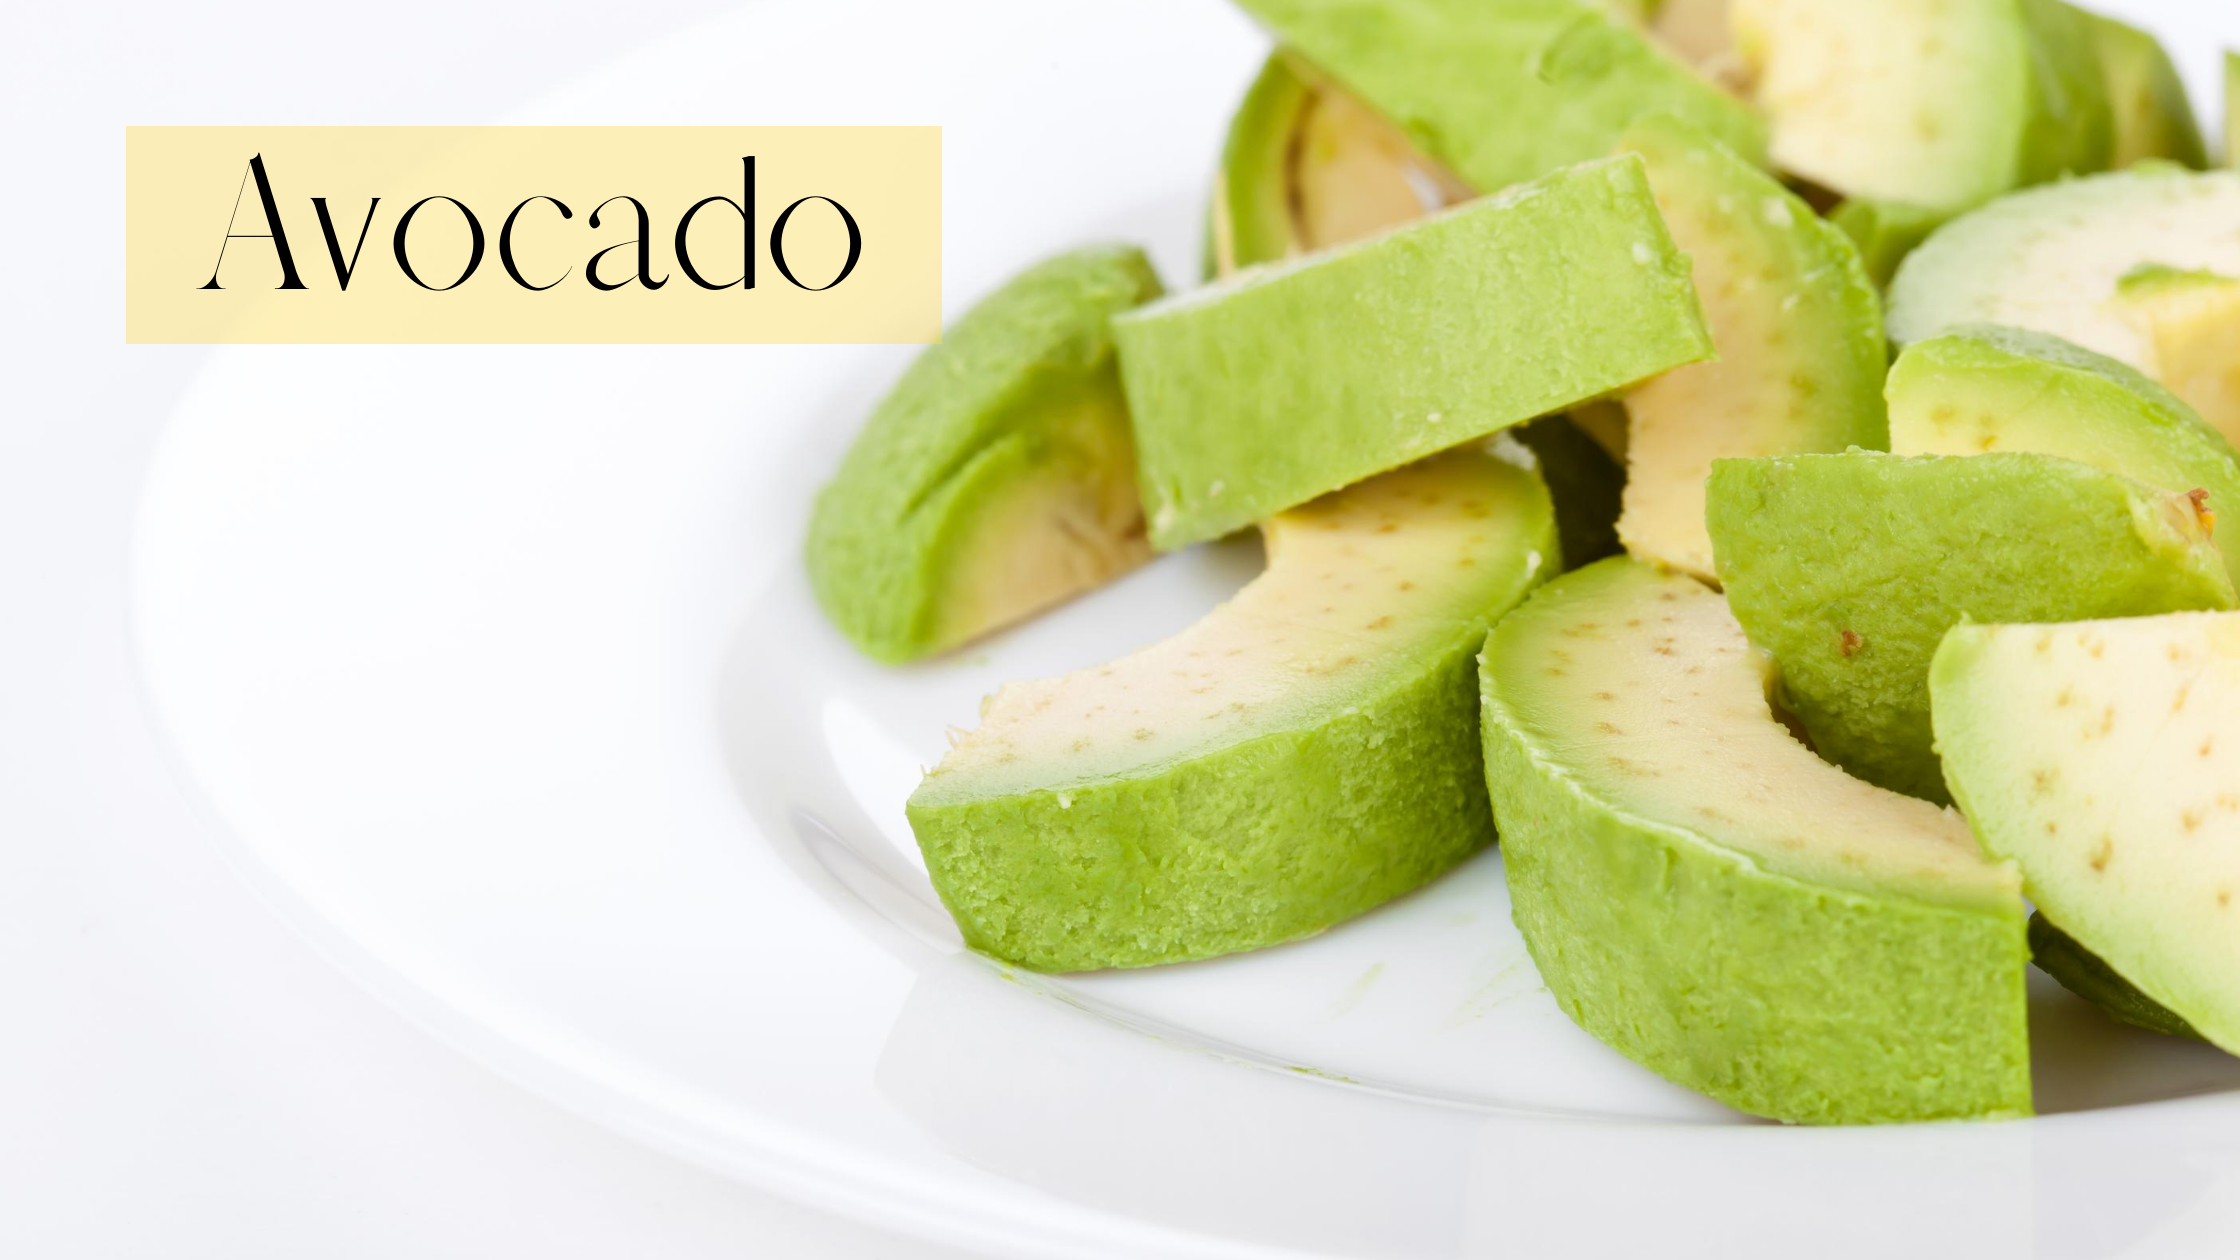 Five Healthy and Unhealthy Food Ingredients to Eat: Avocados